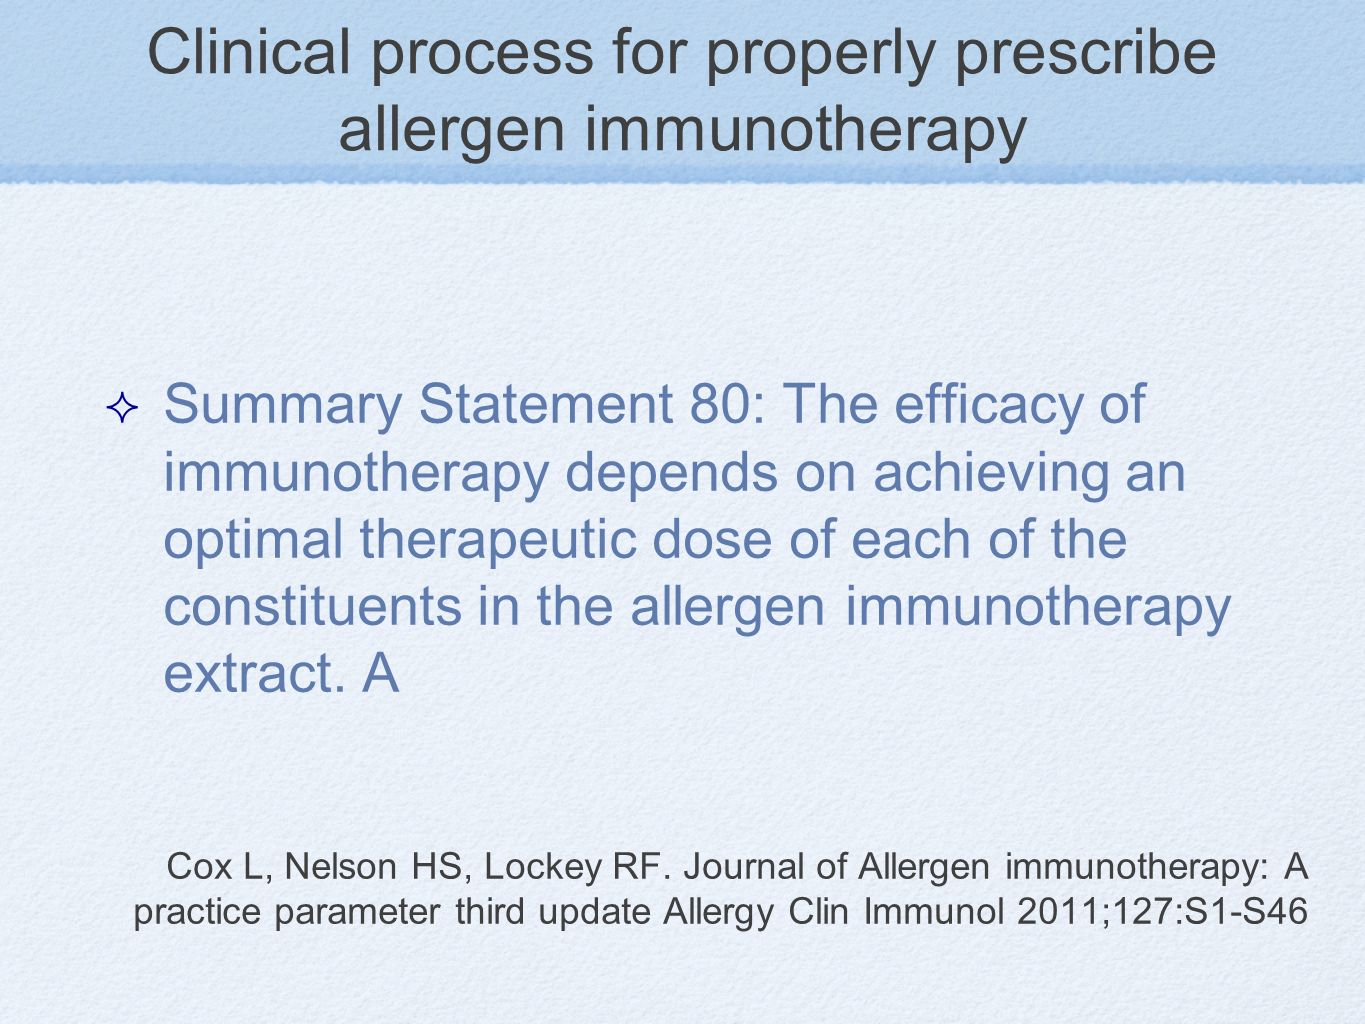 Clinical process for properly prescribe allergen immunotherapy